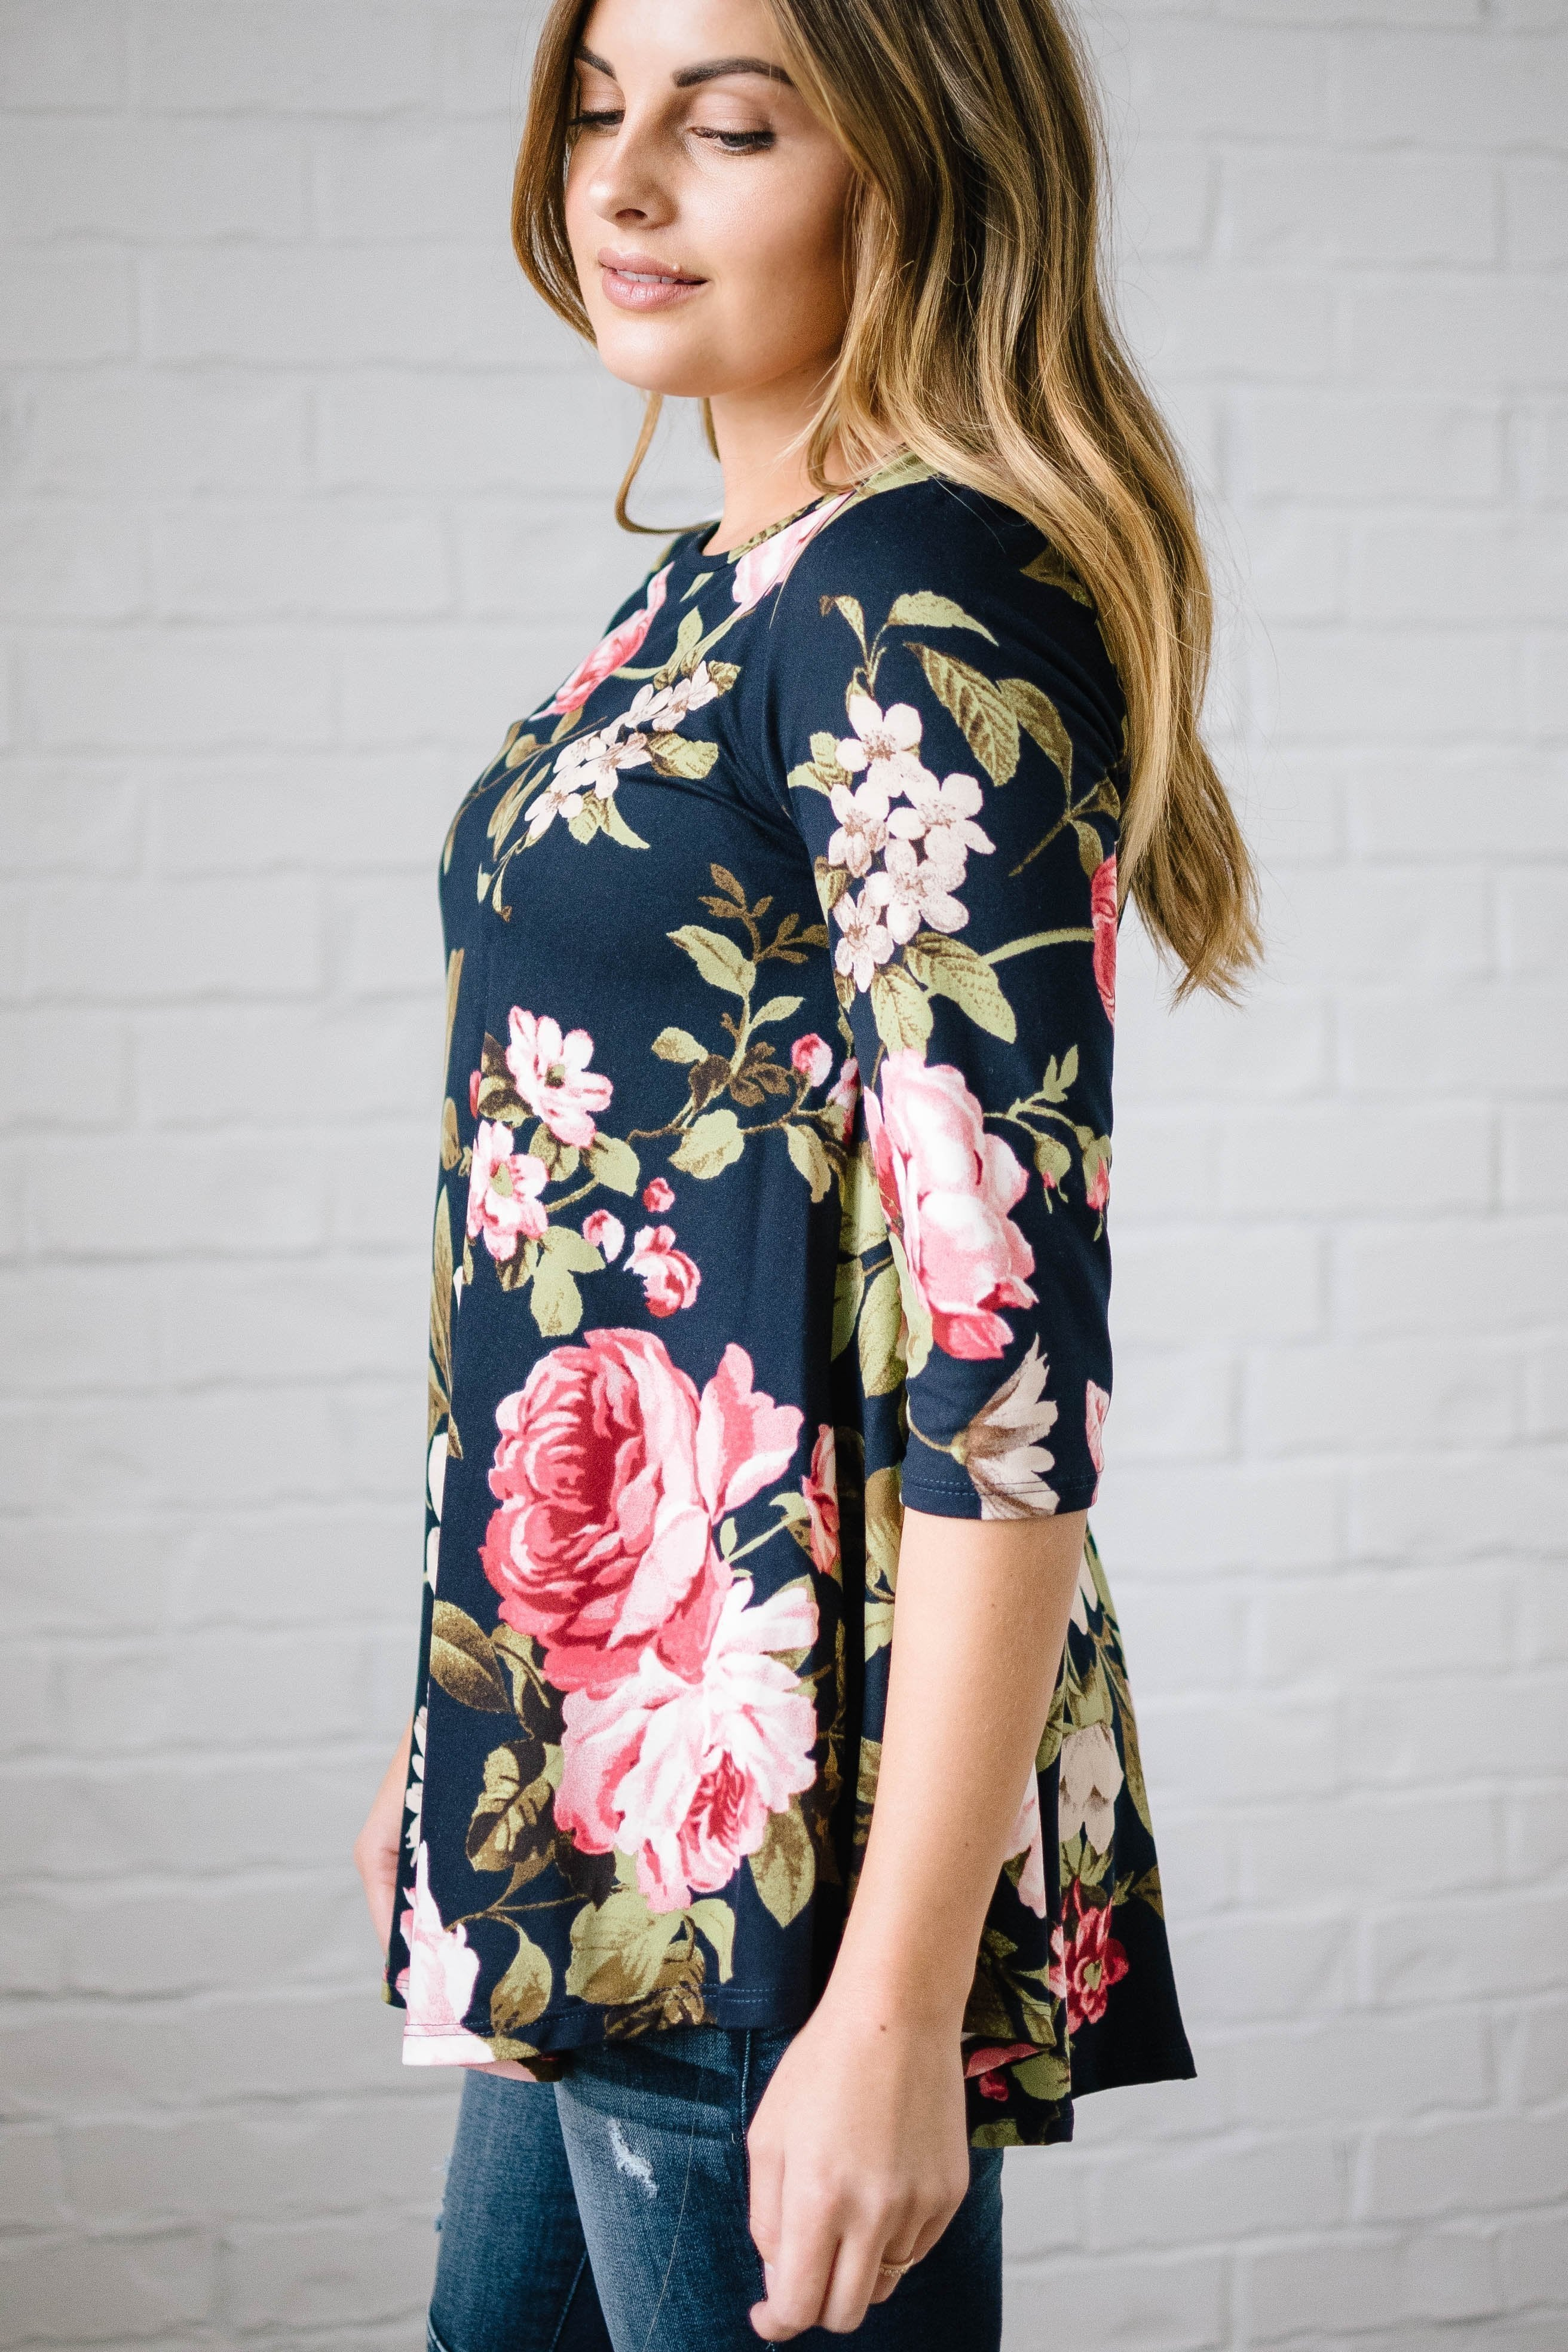 Monroe Floral Swing Blouse in Navy